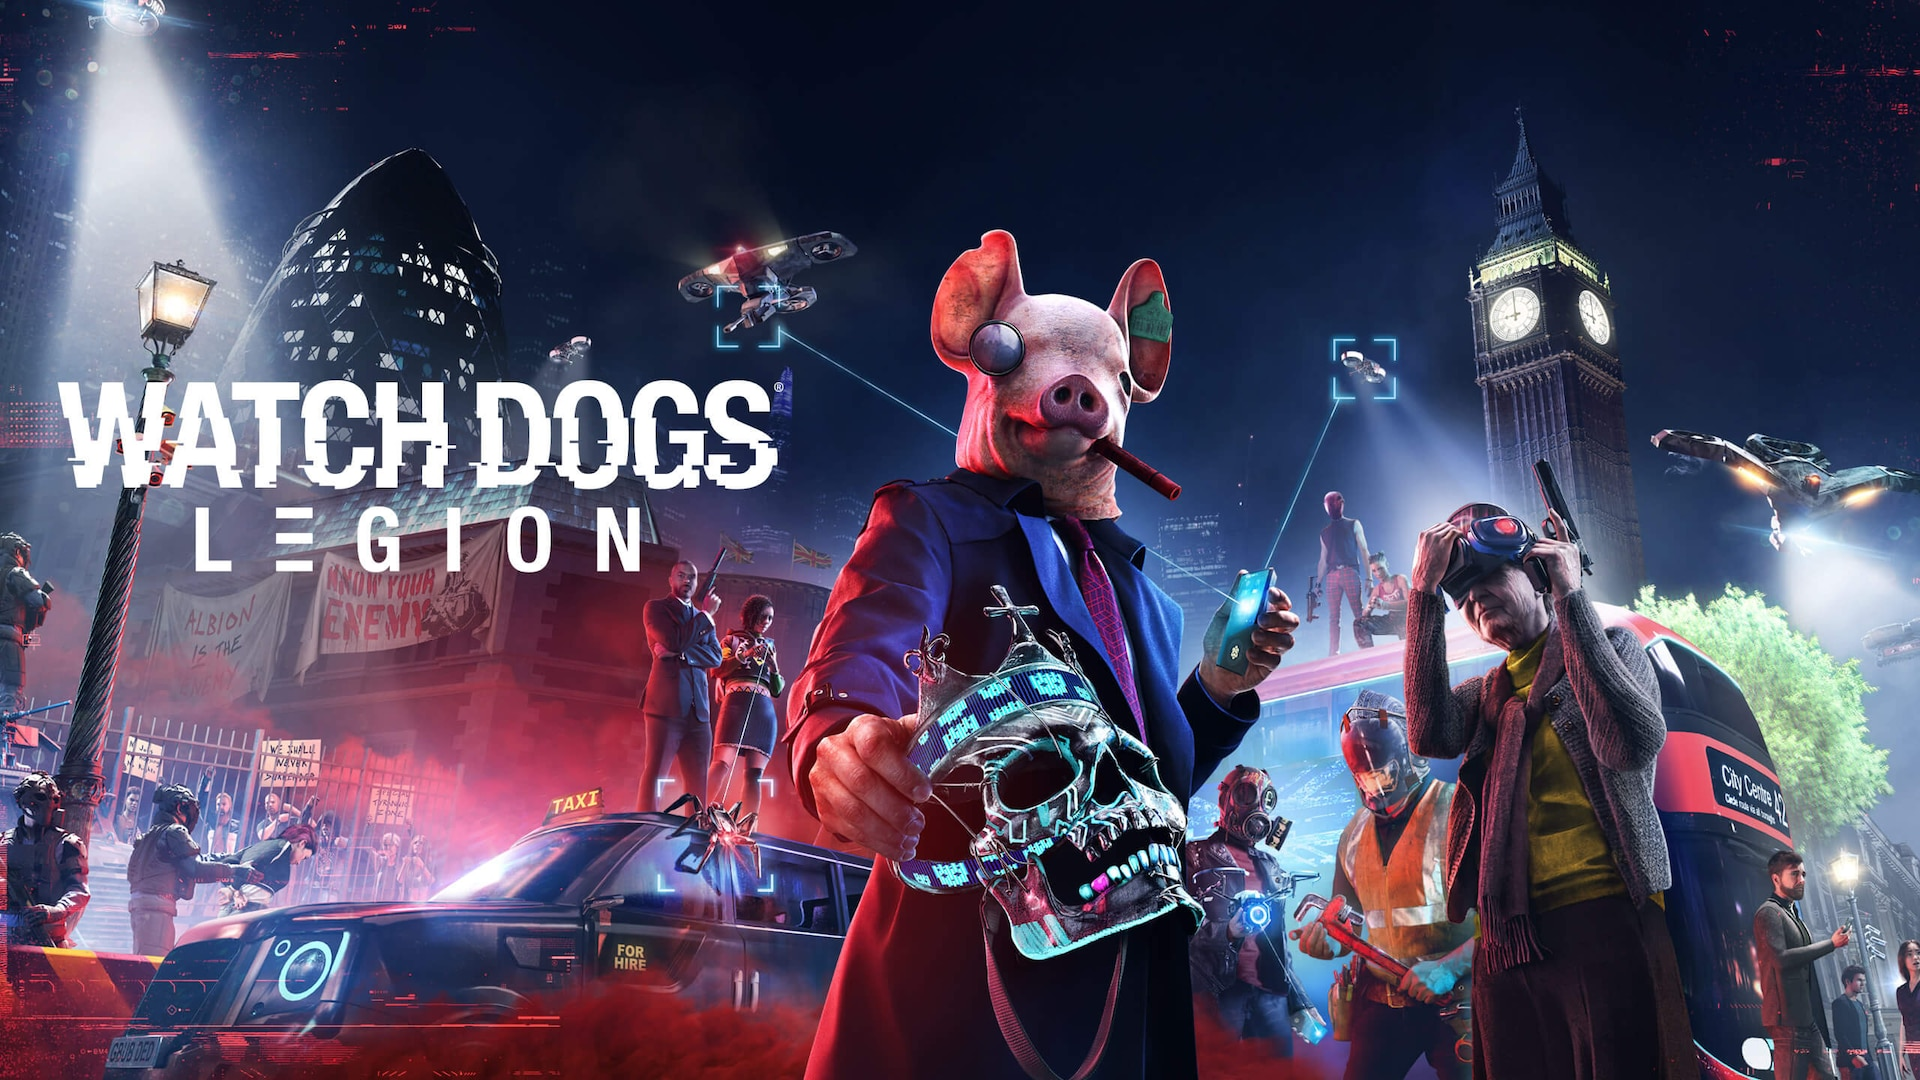 Play Watch Dogs Legion on Epic Games Store